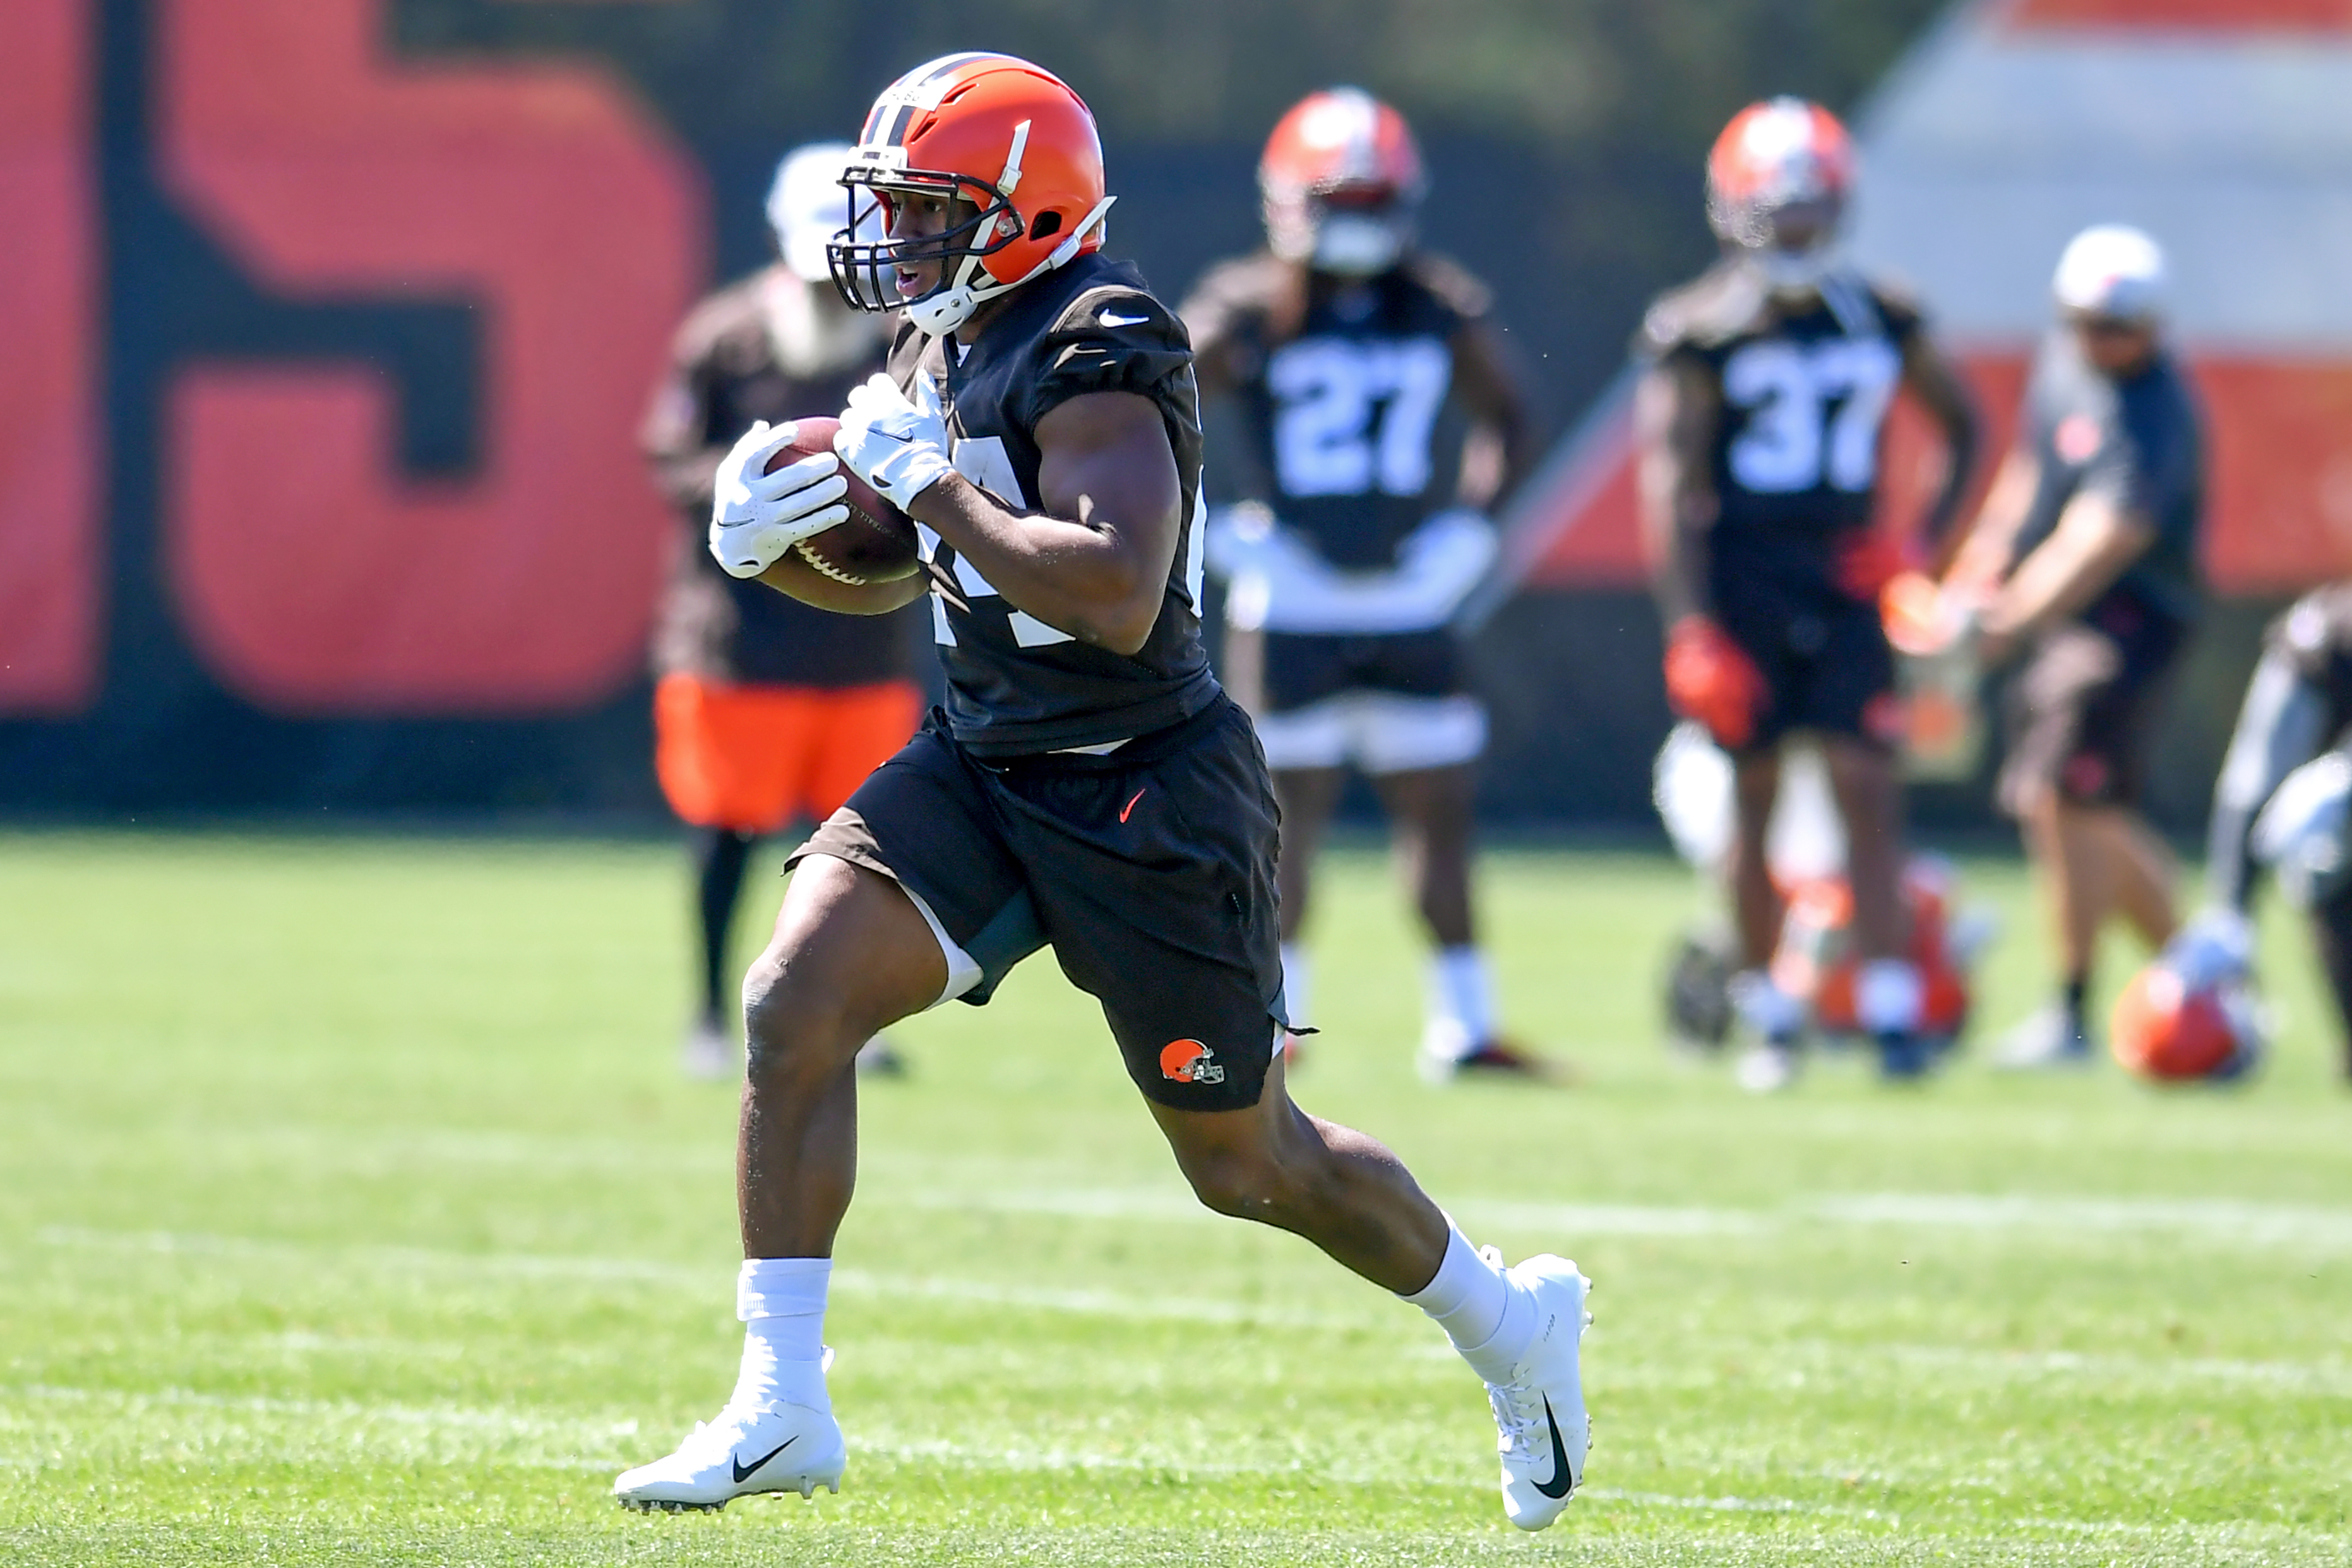 Running back Nick Chubb of the Cleveland Browns carries the ball during a mini camp at the Cleveland Browns training facility on June 16, 2021 in Berea, Ohio.